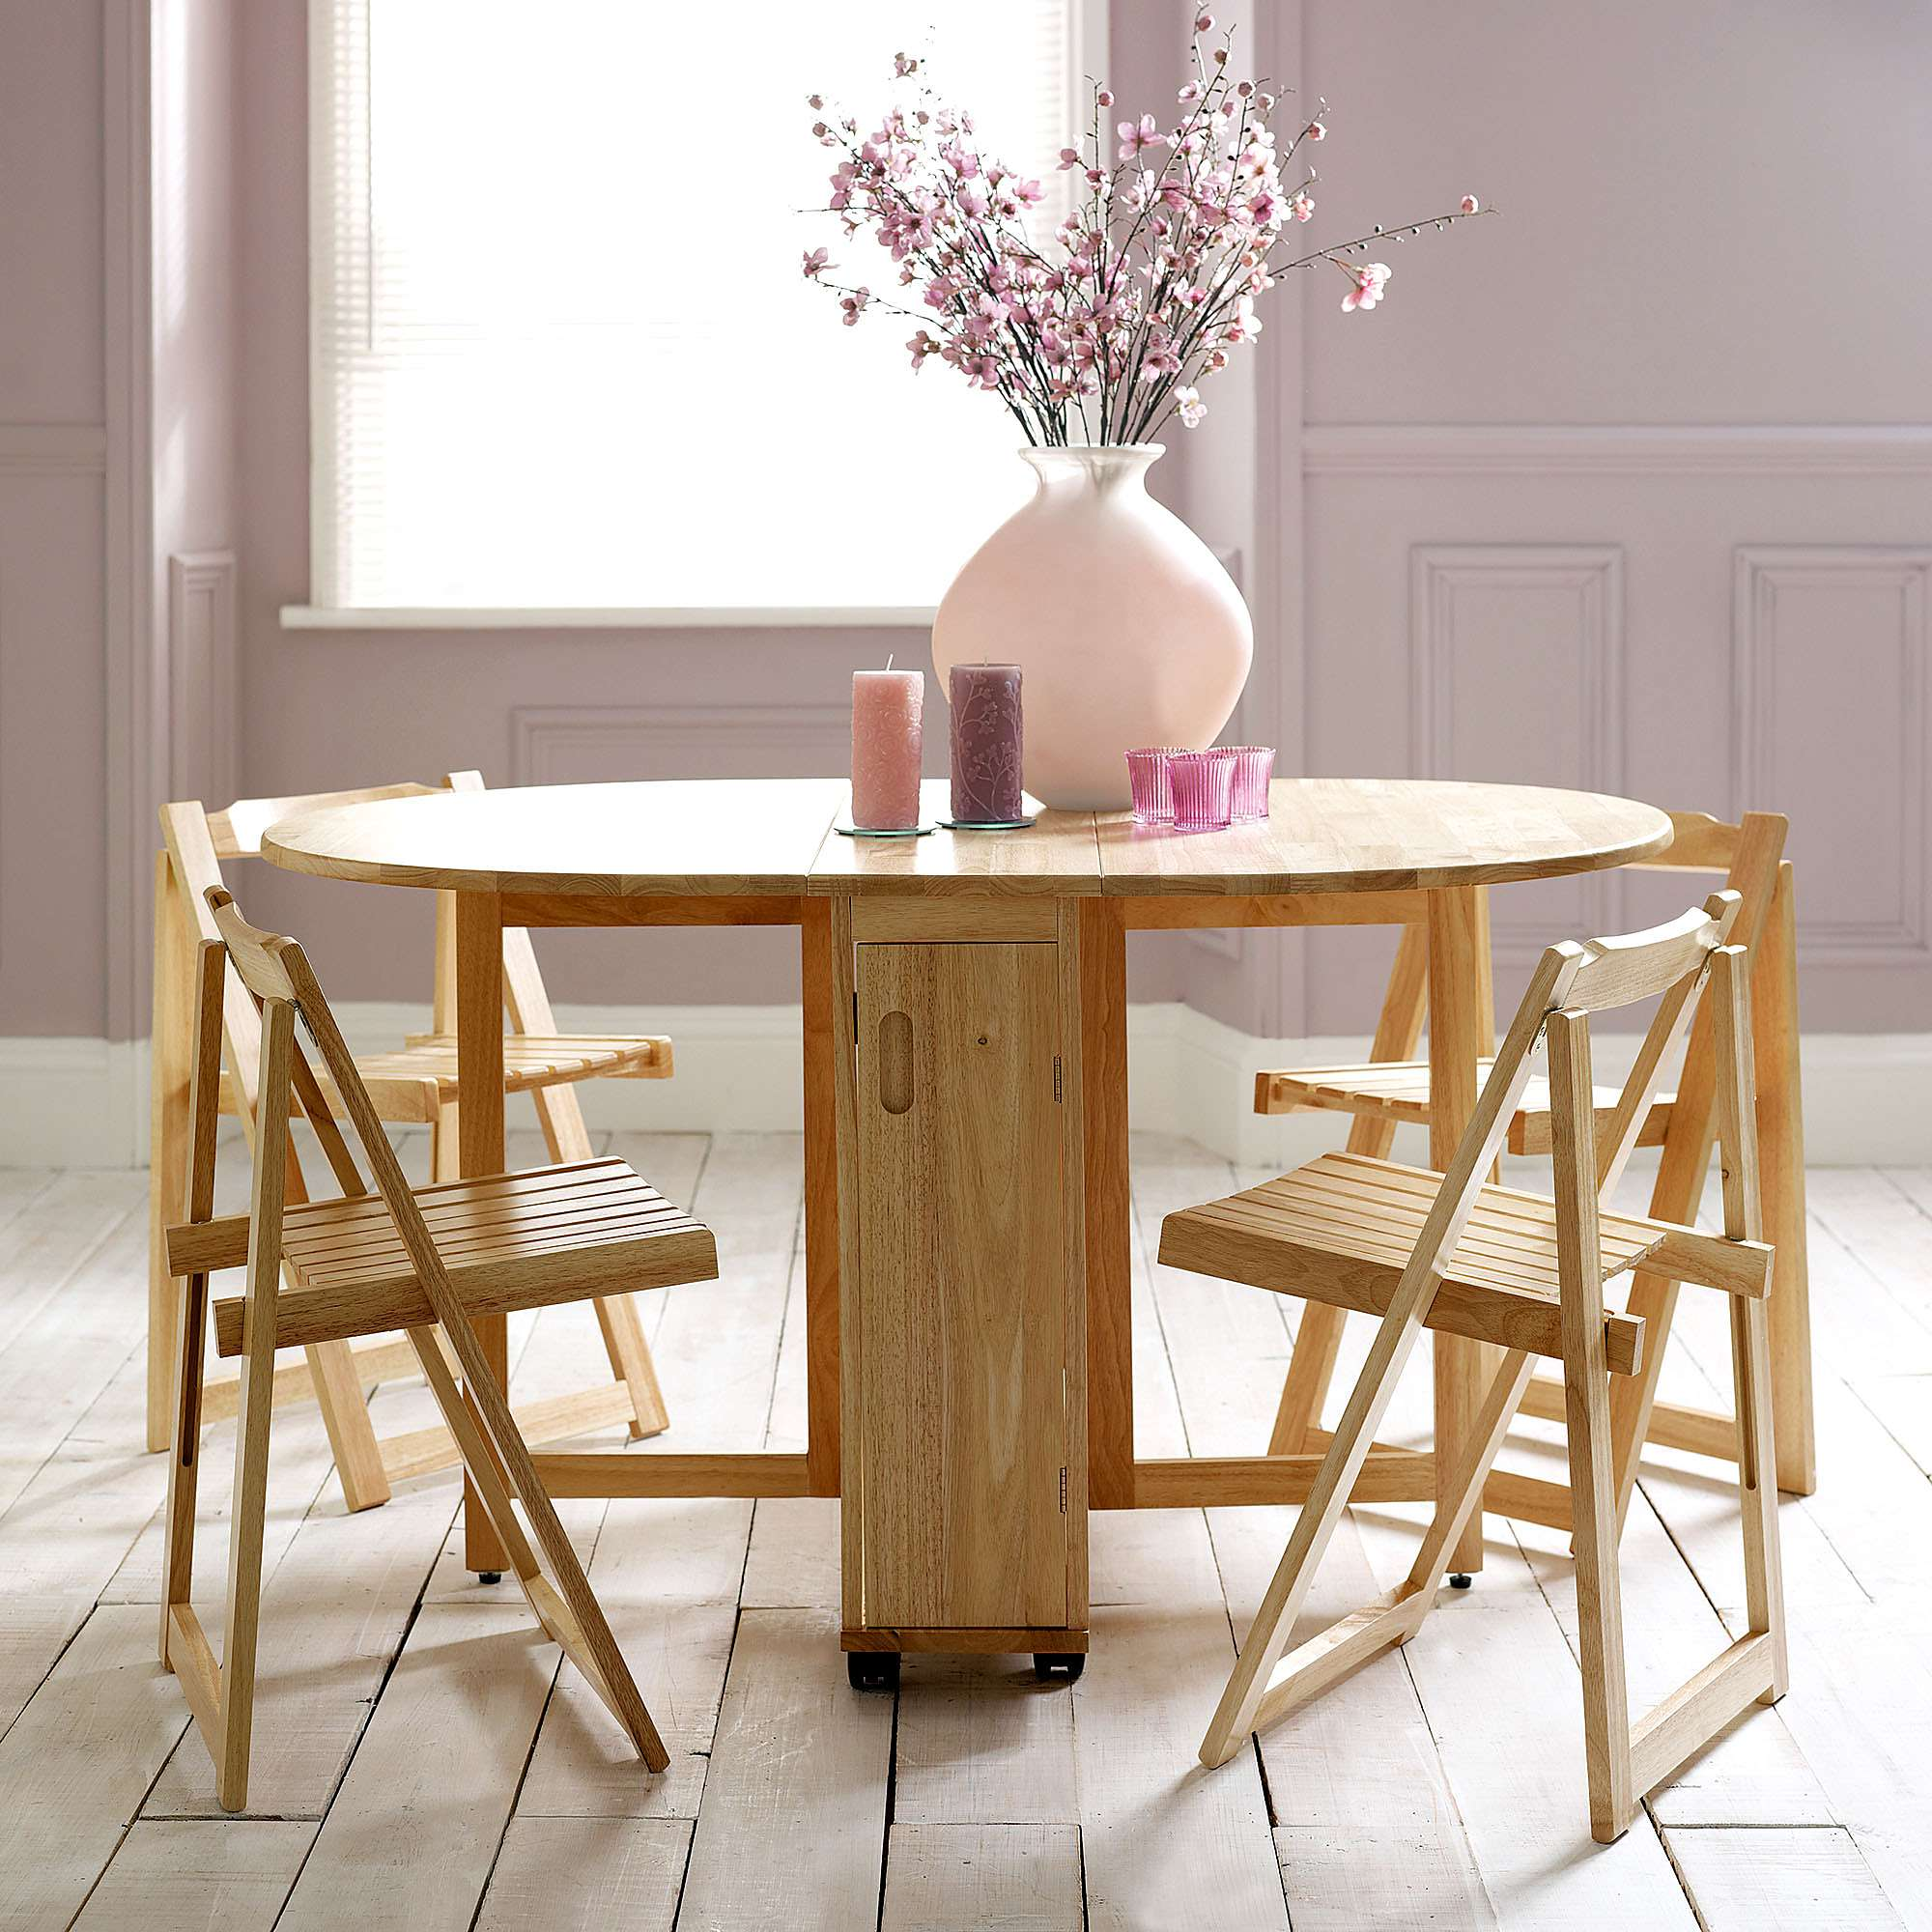 Choose a folding dining table for a small space adorable for Dining table options for small spaces